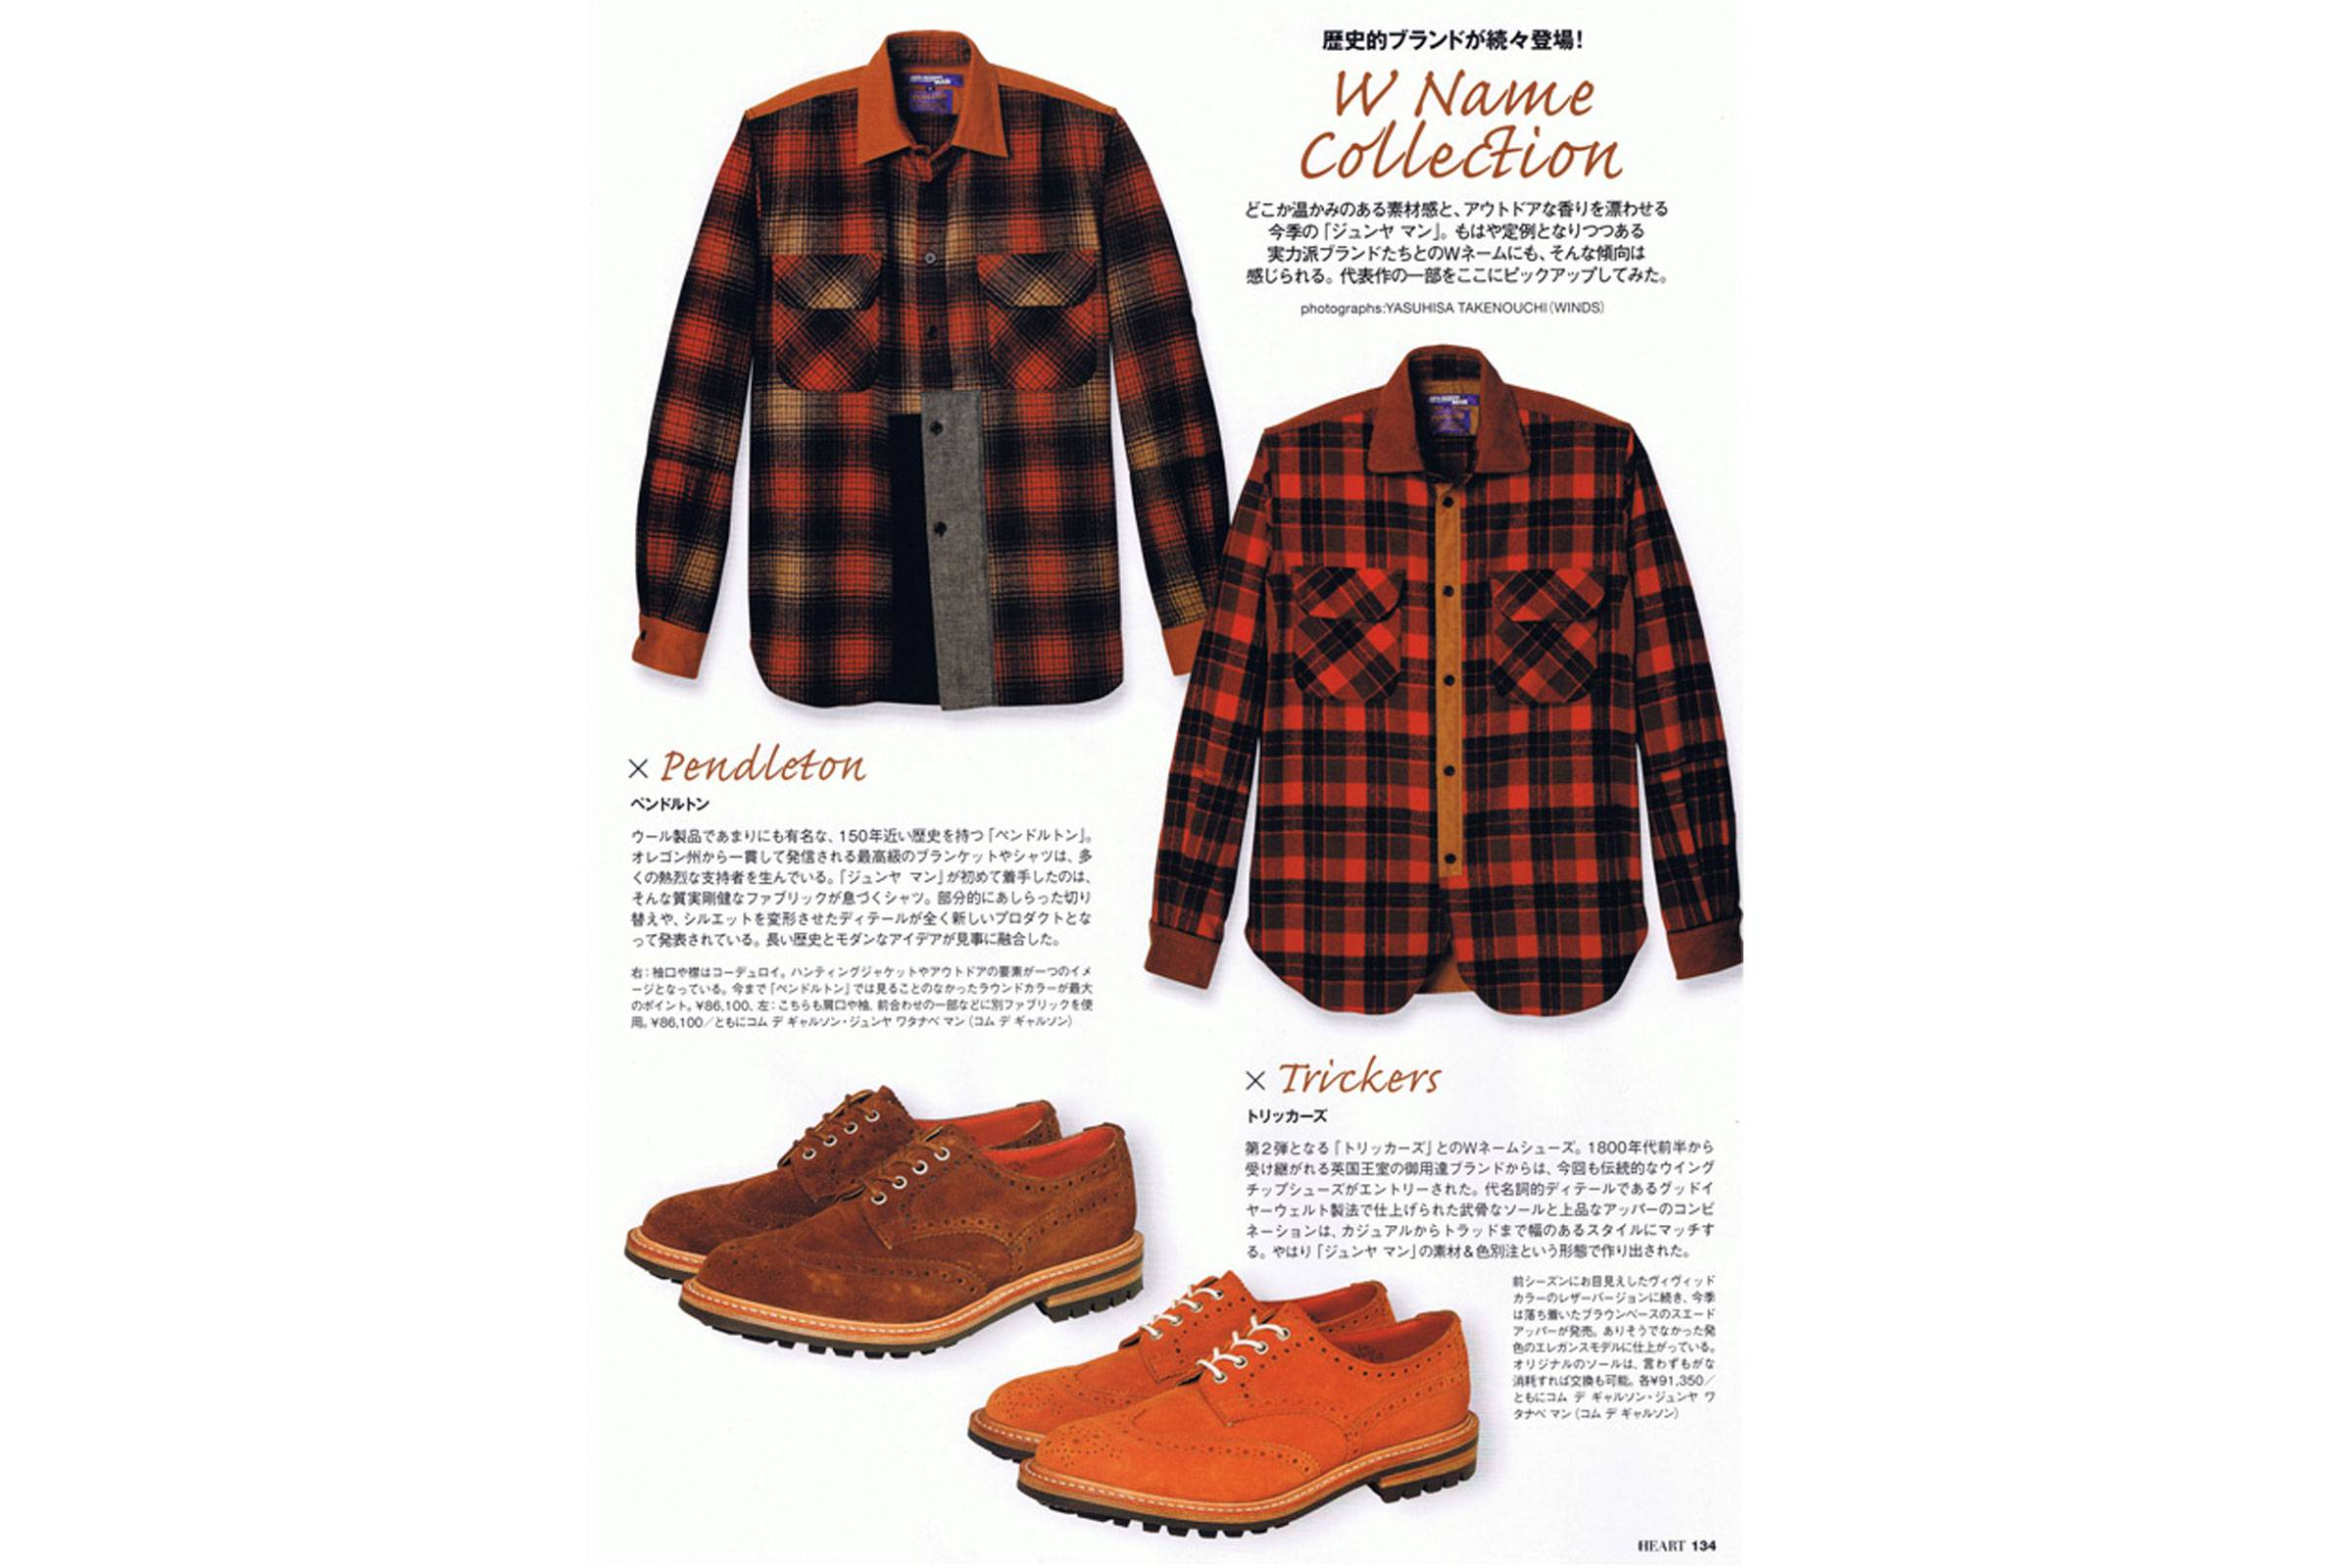 """HEART"" magazine editorial featuring the Pendleton collaboration within the ""W Name"" collection, as part of Junya Watanabe Comme des Garçons MAN Fall/Winter 2009"